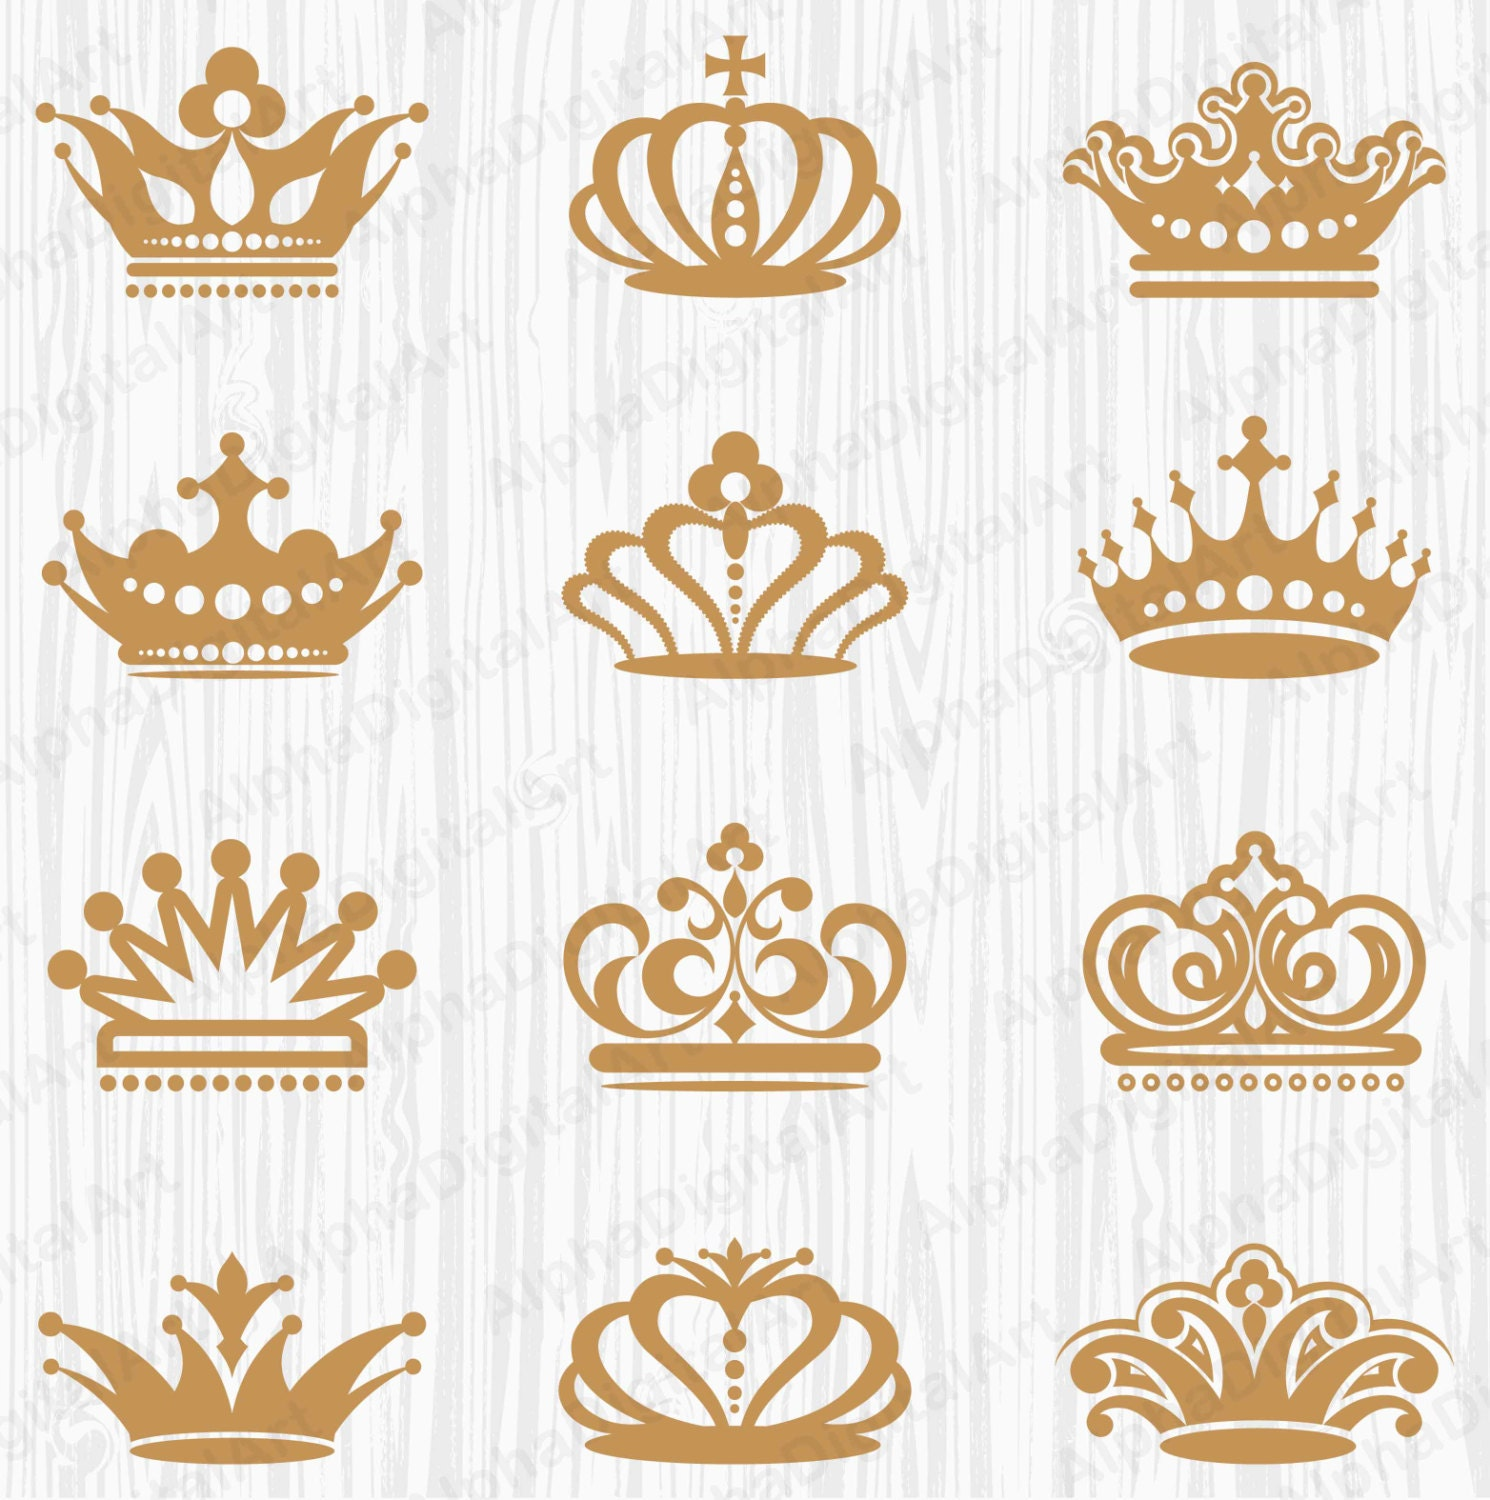 12 Vintage Retro Crown clipart, Ornate floral elements, retro frames ...